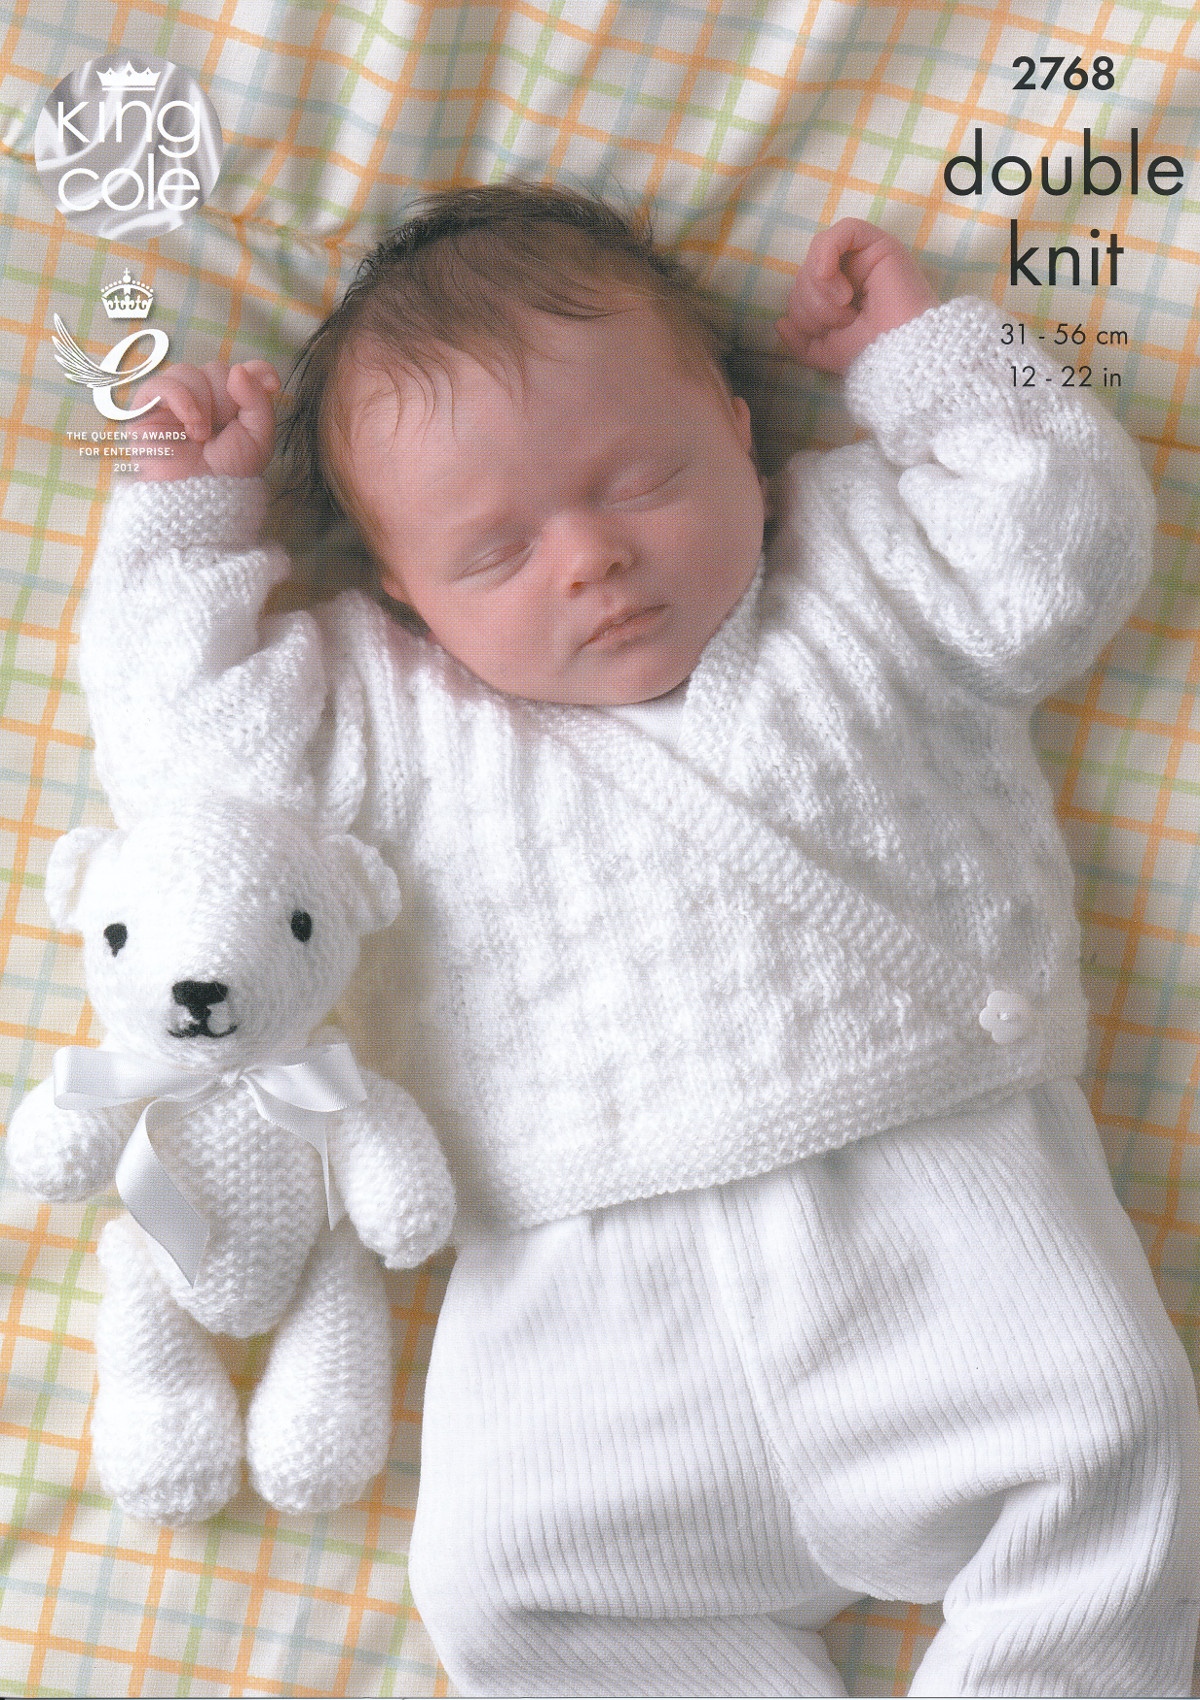 King cole double knitting pattern baby cardigan sweater teddy bear we have a wide range of double knitting yarns that are available to purchase on a separate listing bankloansurffo Choice Image